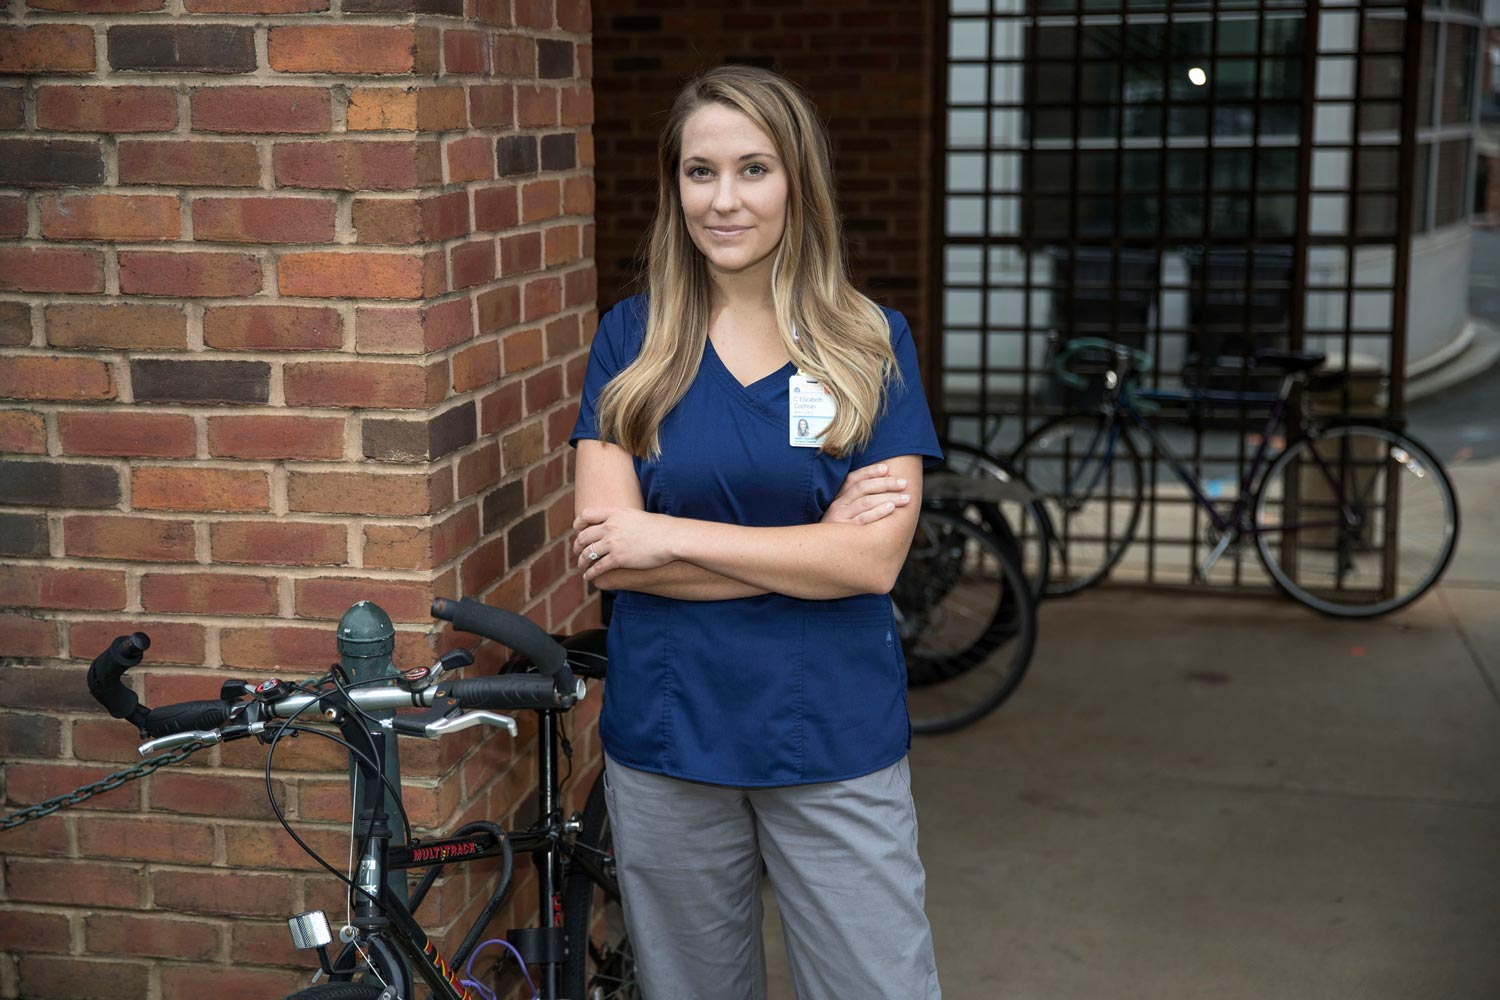 Knowing the rules of the road is just one way cyclists can protect themselves, according to UVA Health System injury prevention coordinator Liz Cochran.